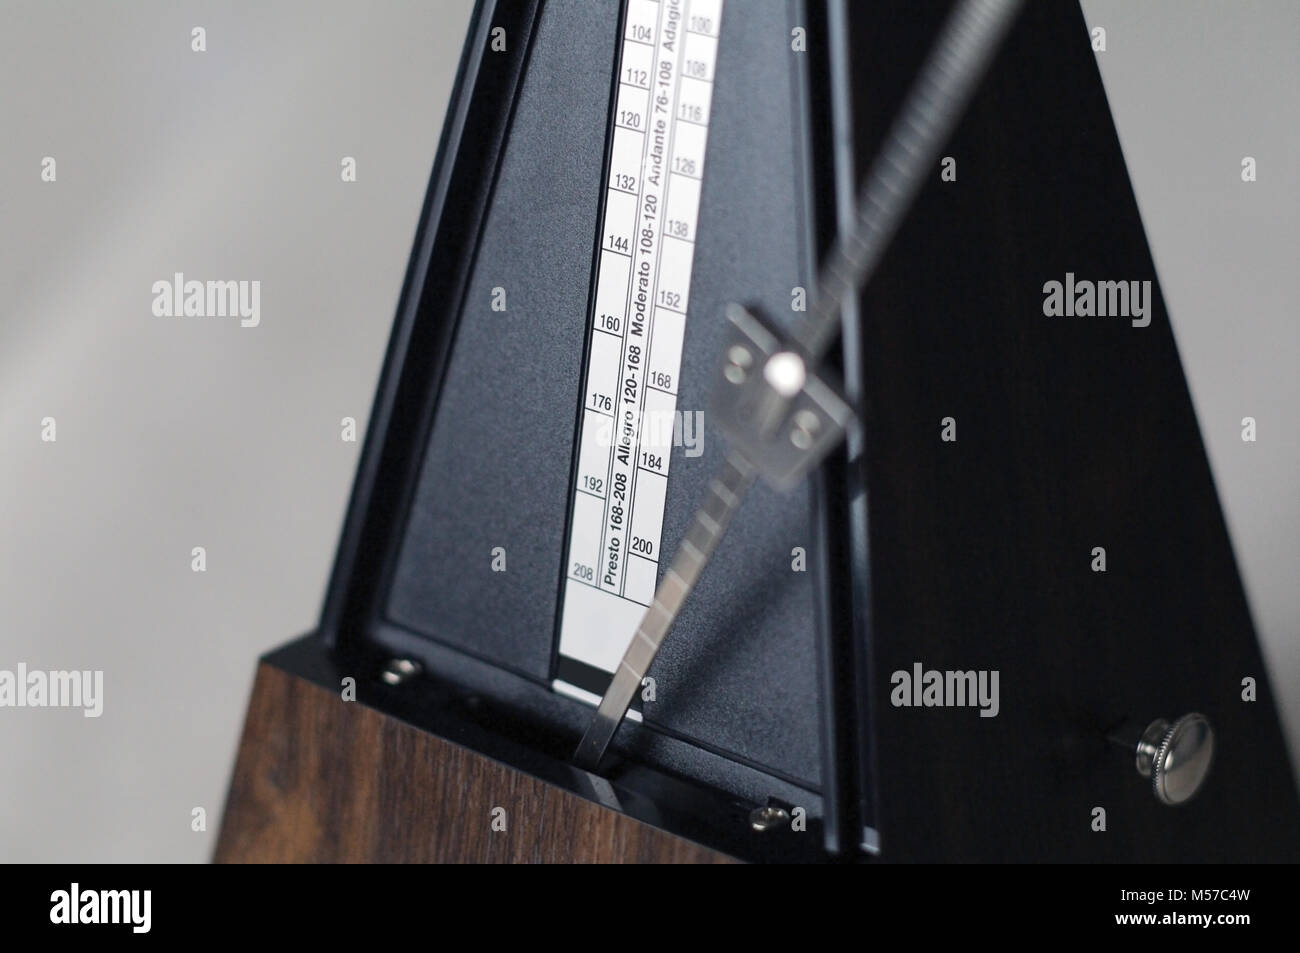 Metronome closeup in action isolated and on a plain background - Stock Image